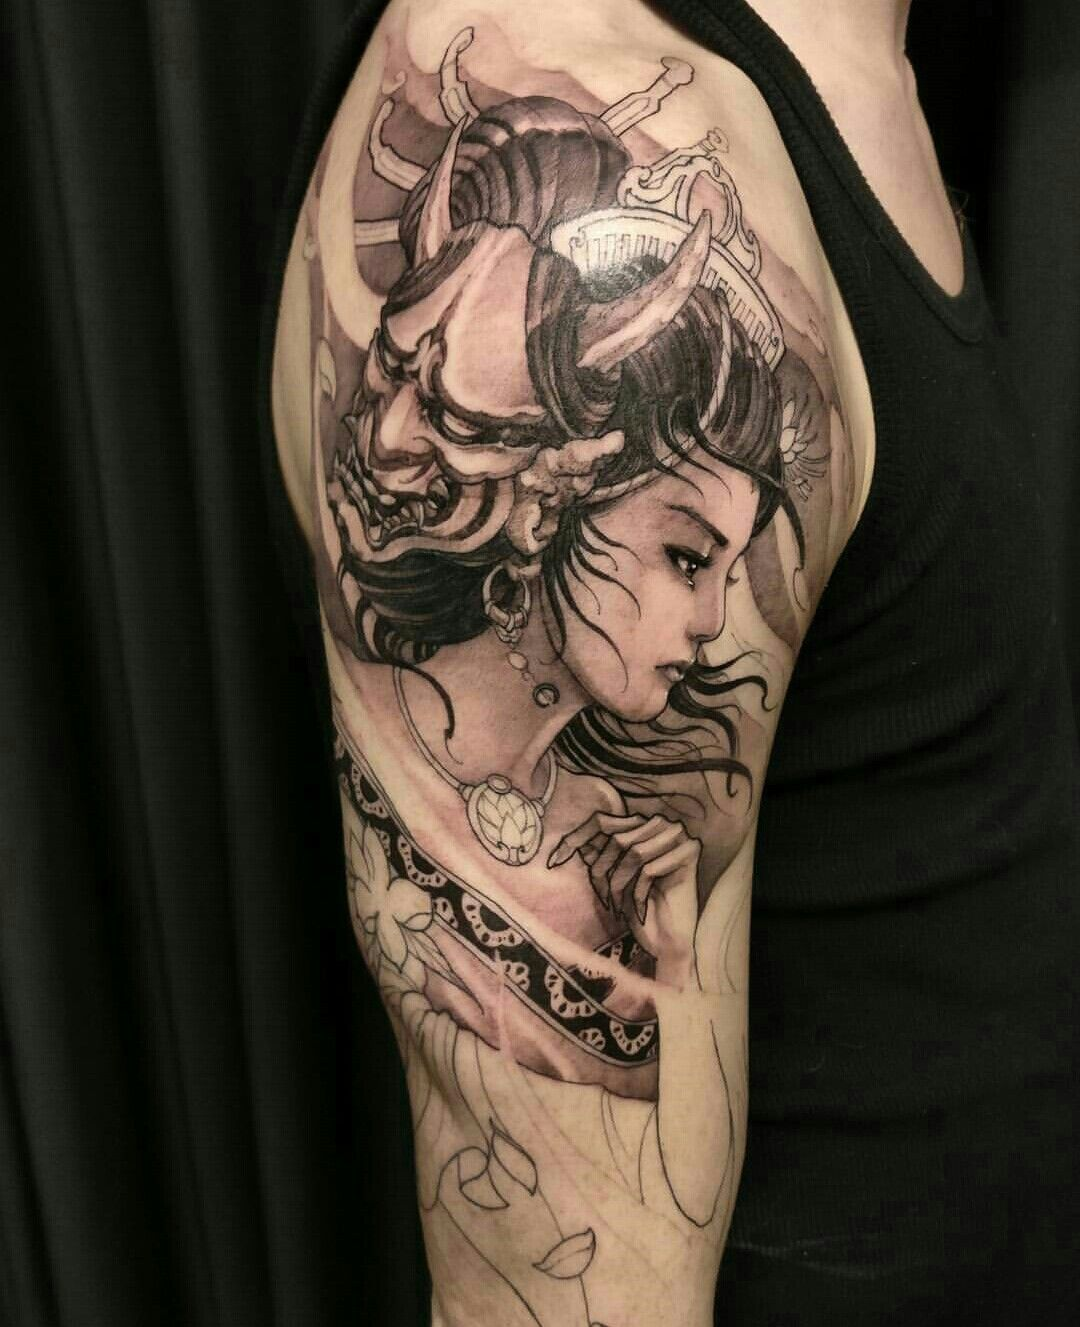 Pin de qu c ph m em c ch p geisha tattoo sleeve - Tattoos geishas japonesas ...